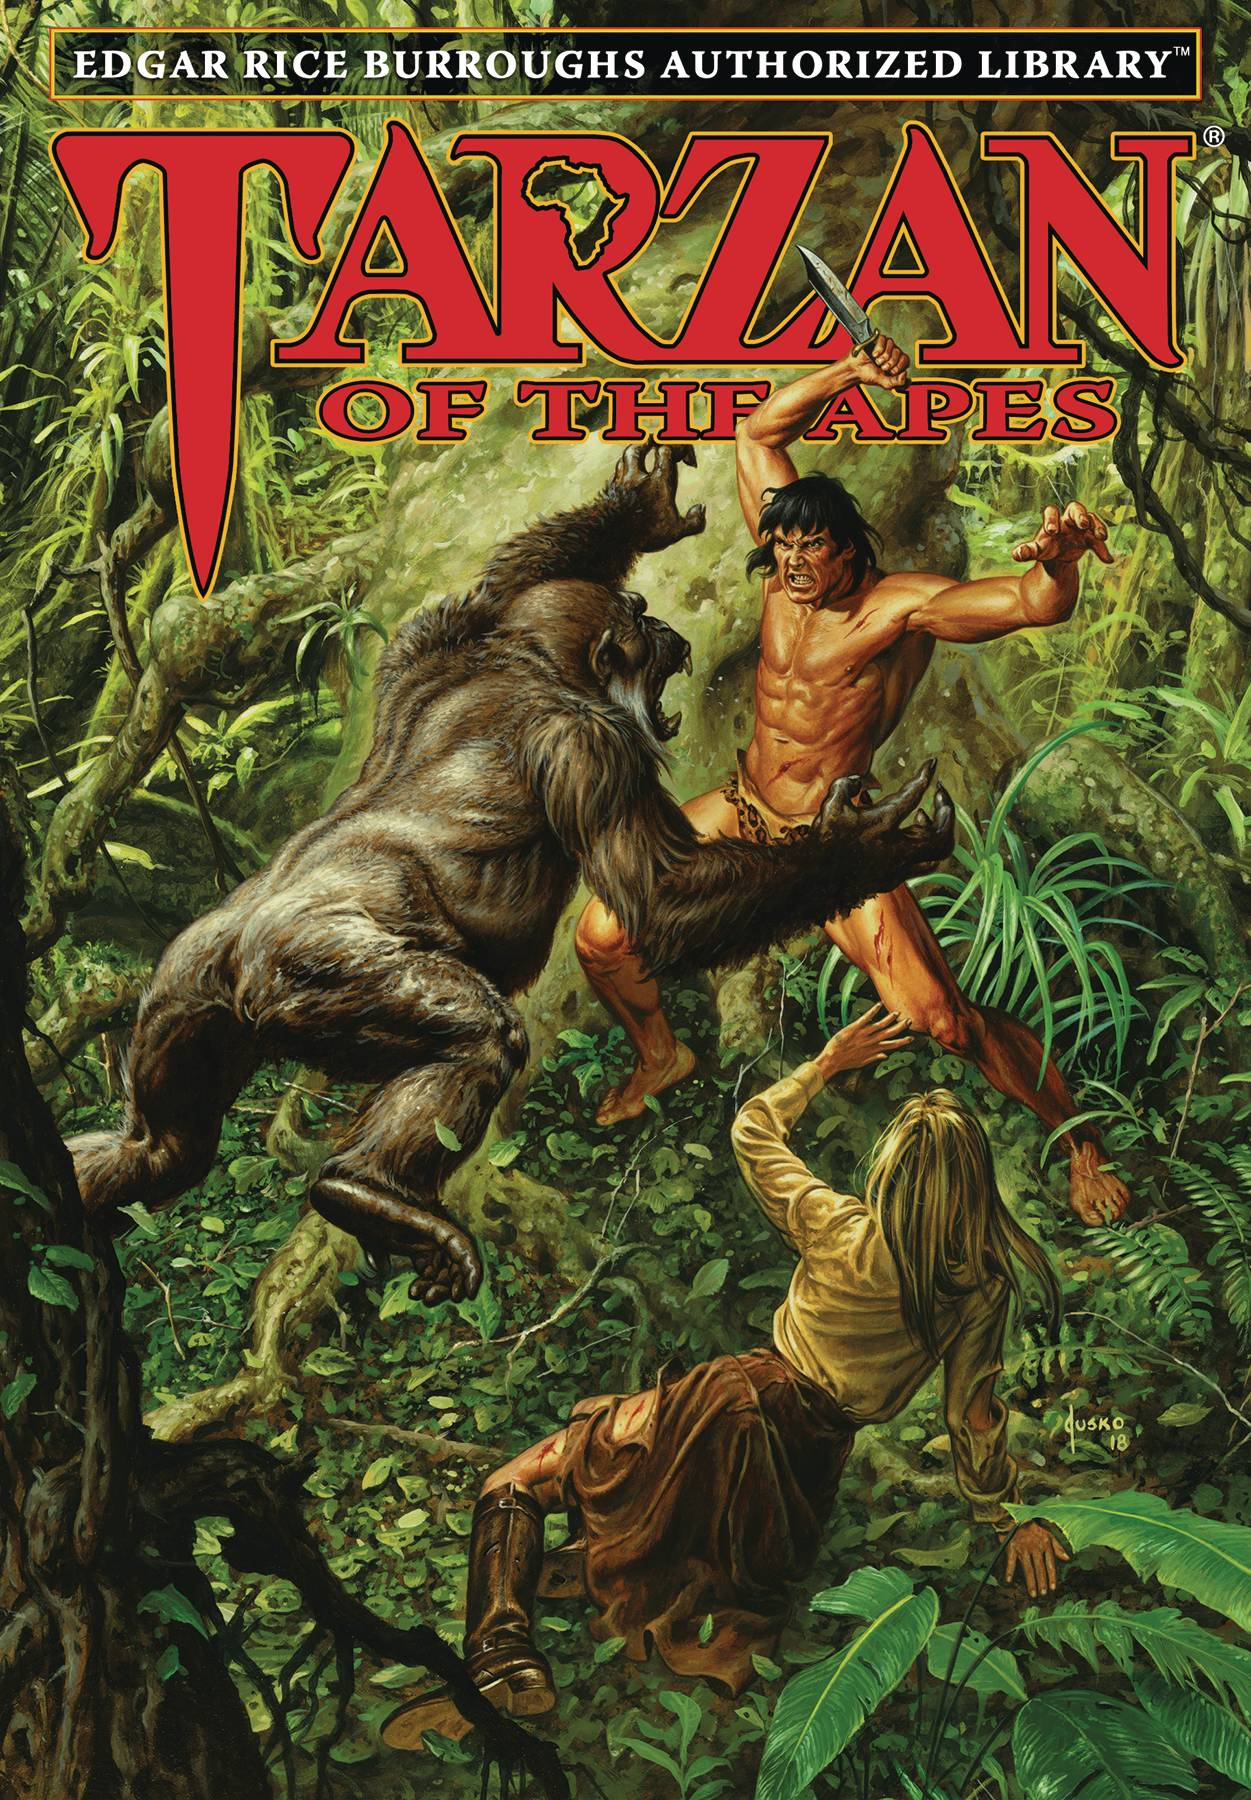 ERB AUTHORIZED LIBRARY TARZAN HC VOL 01 TARZAN OF THE APES (